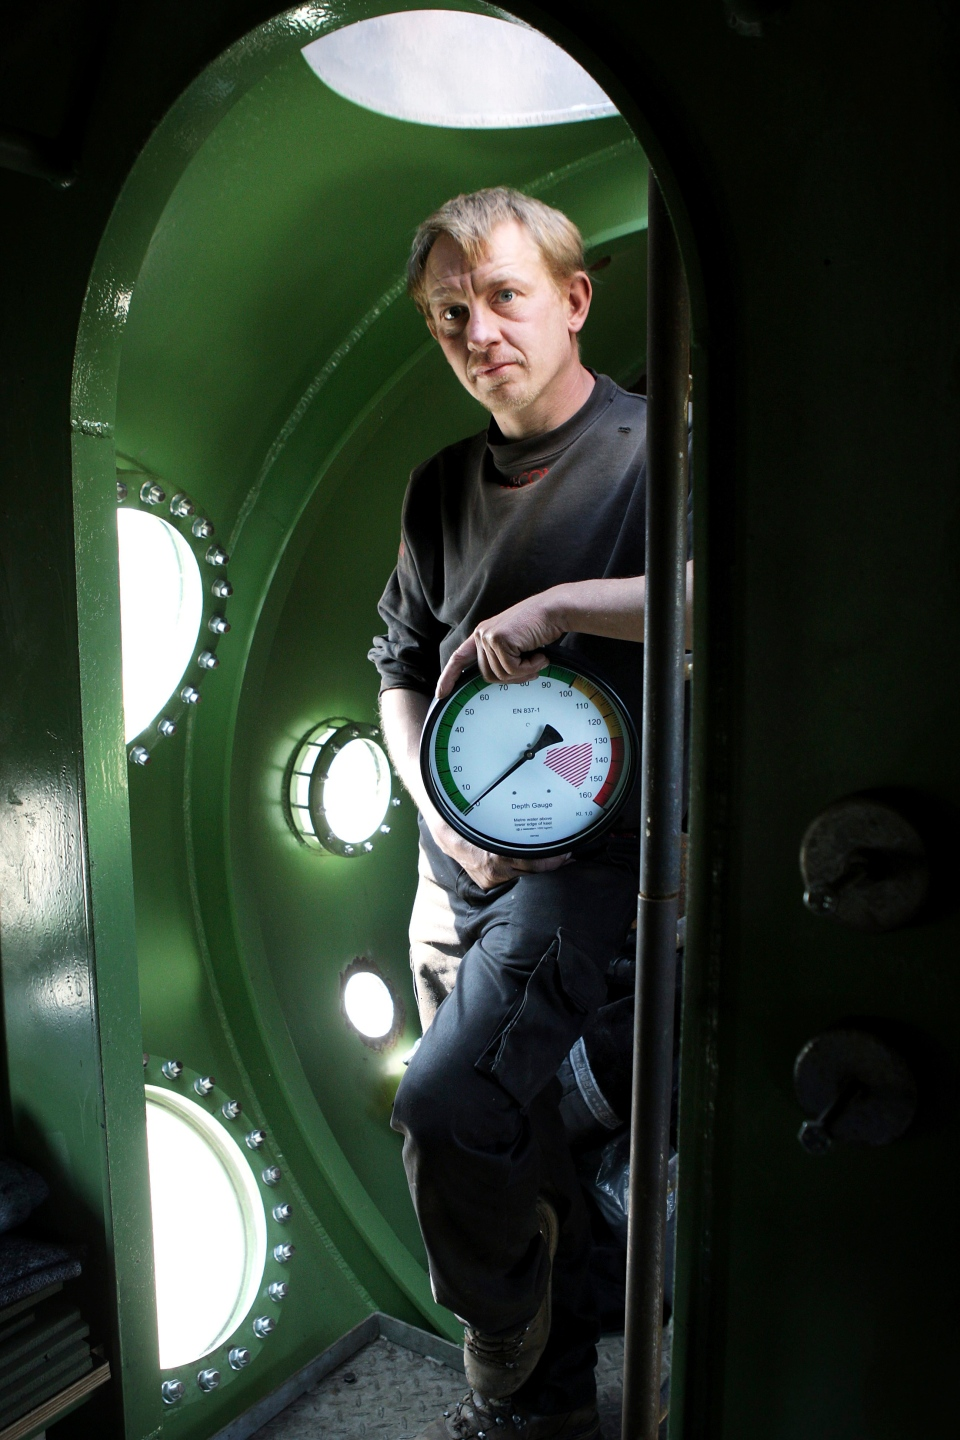 This is a April 30, 2008 file photo of submarine owner Peter Madsen inside his vessel . (Niels Hougaard/Ritzau. File via AP)